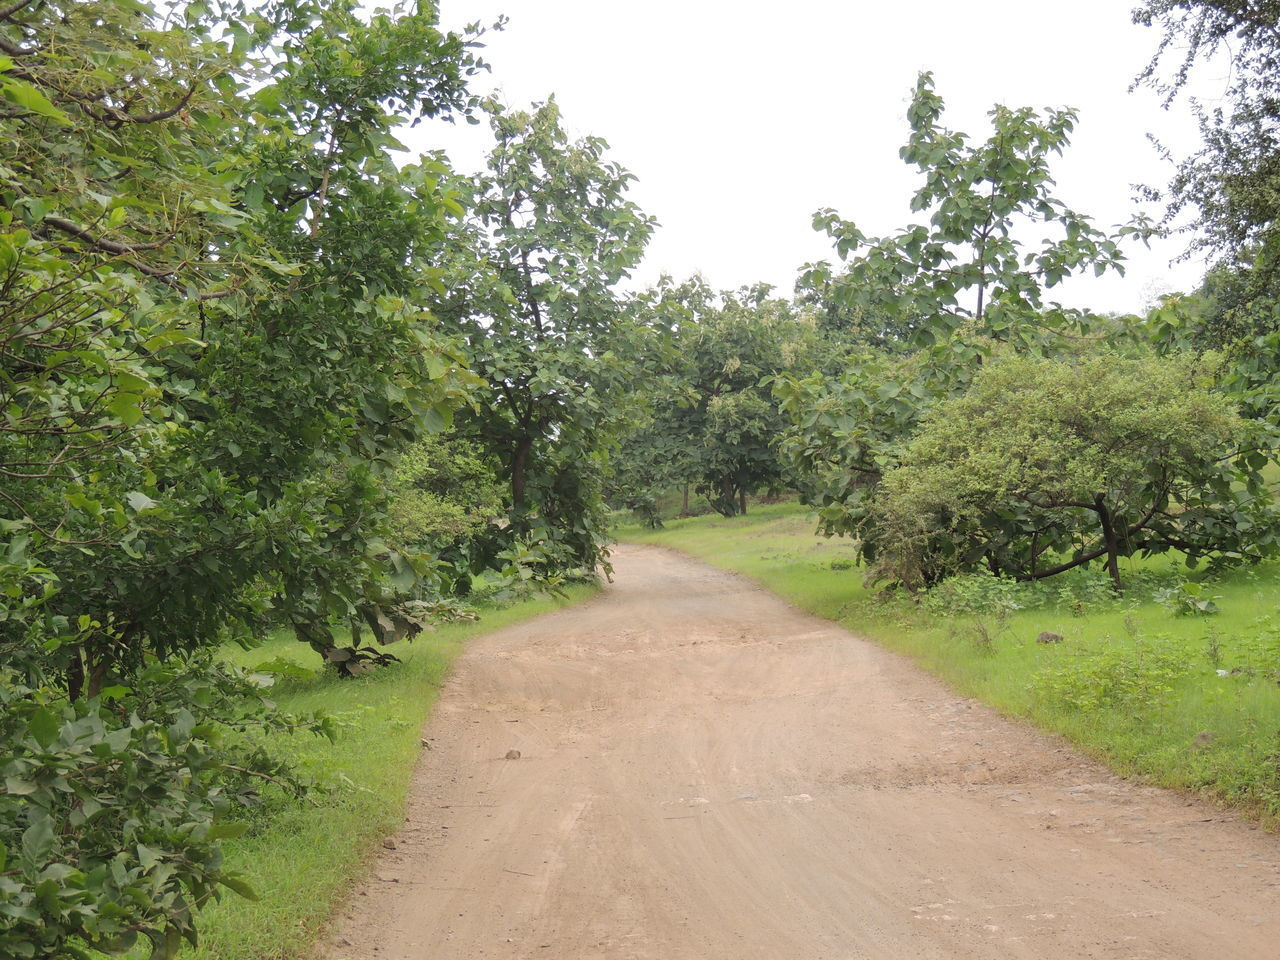 Beauty In Nature Day EyEmNewHere Green Color India Nature No People Outdoors The Way Forward Tree Without Edit ^^